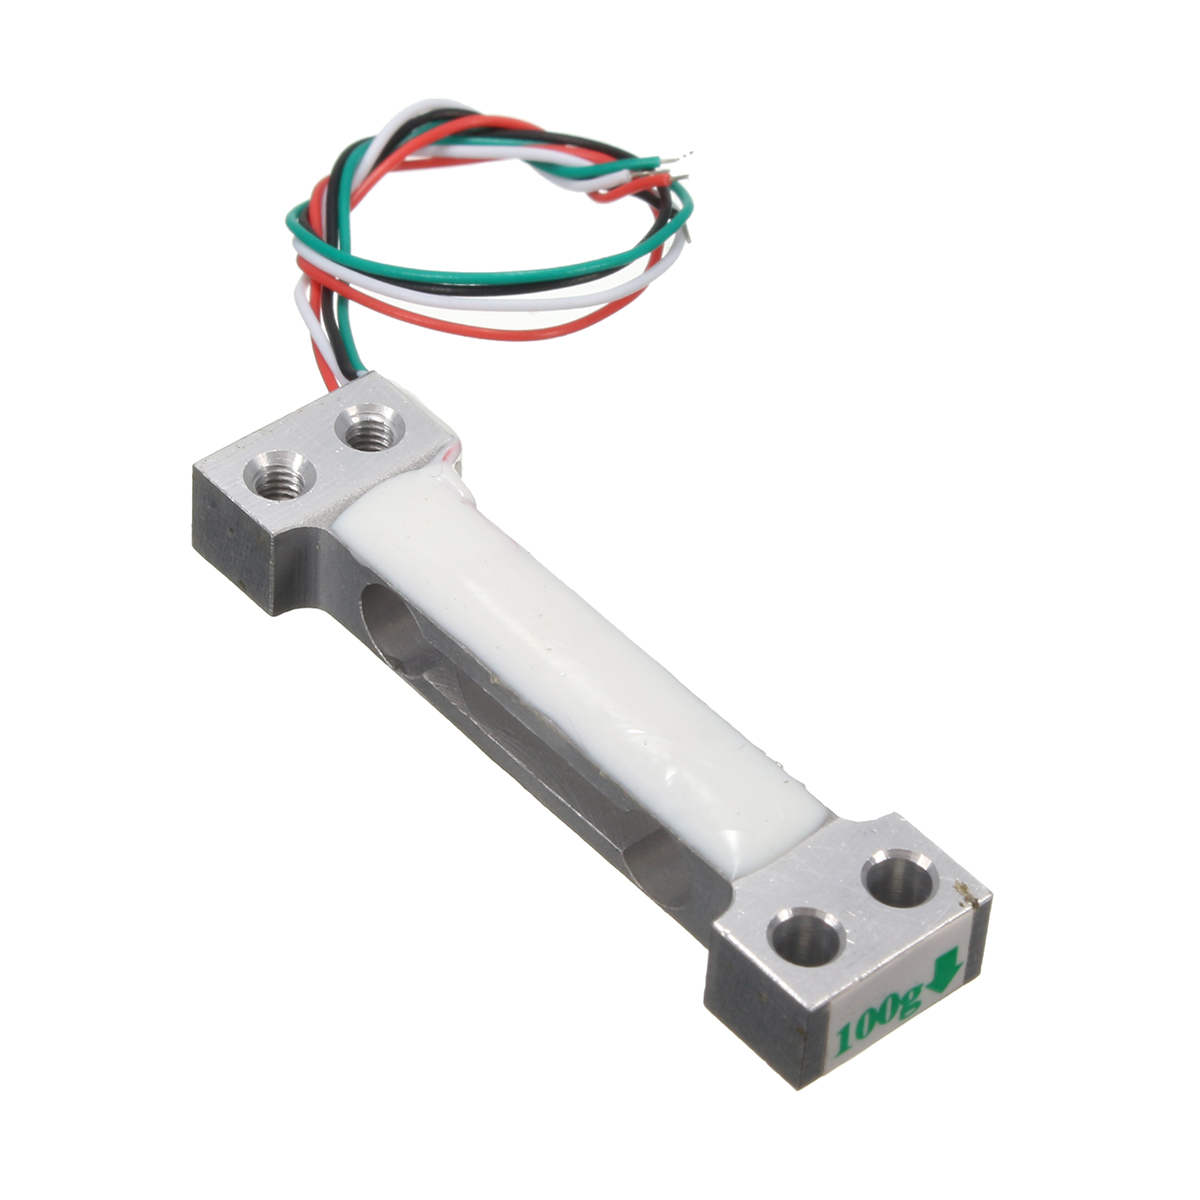 100g Range Aluminum Alloy Small Scale High Precision Weighing Sensor Load Cell